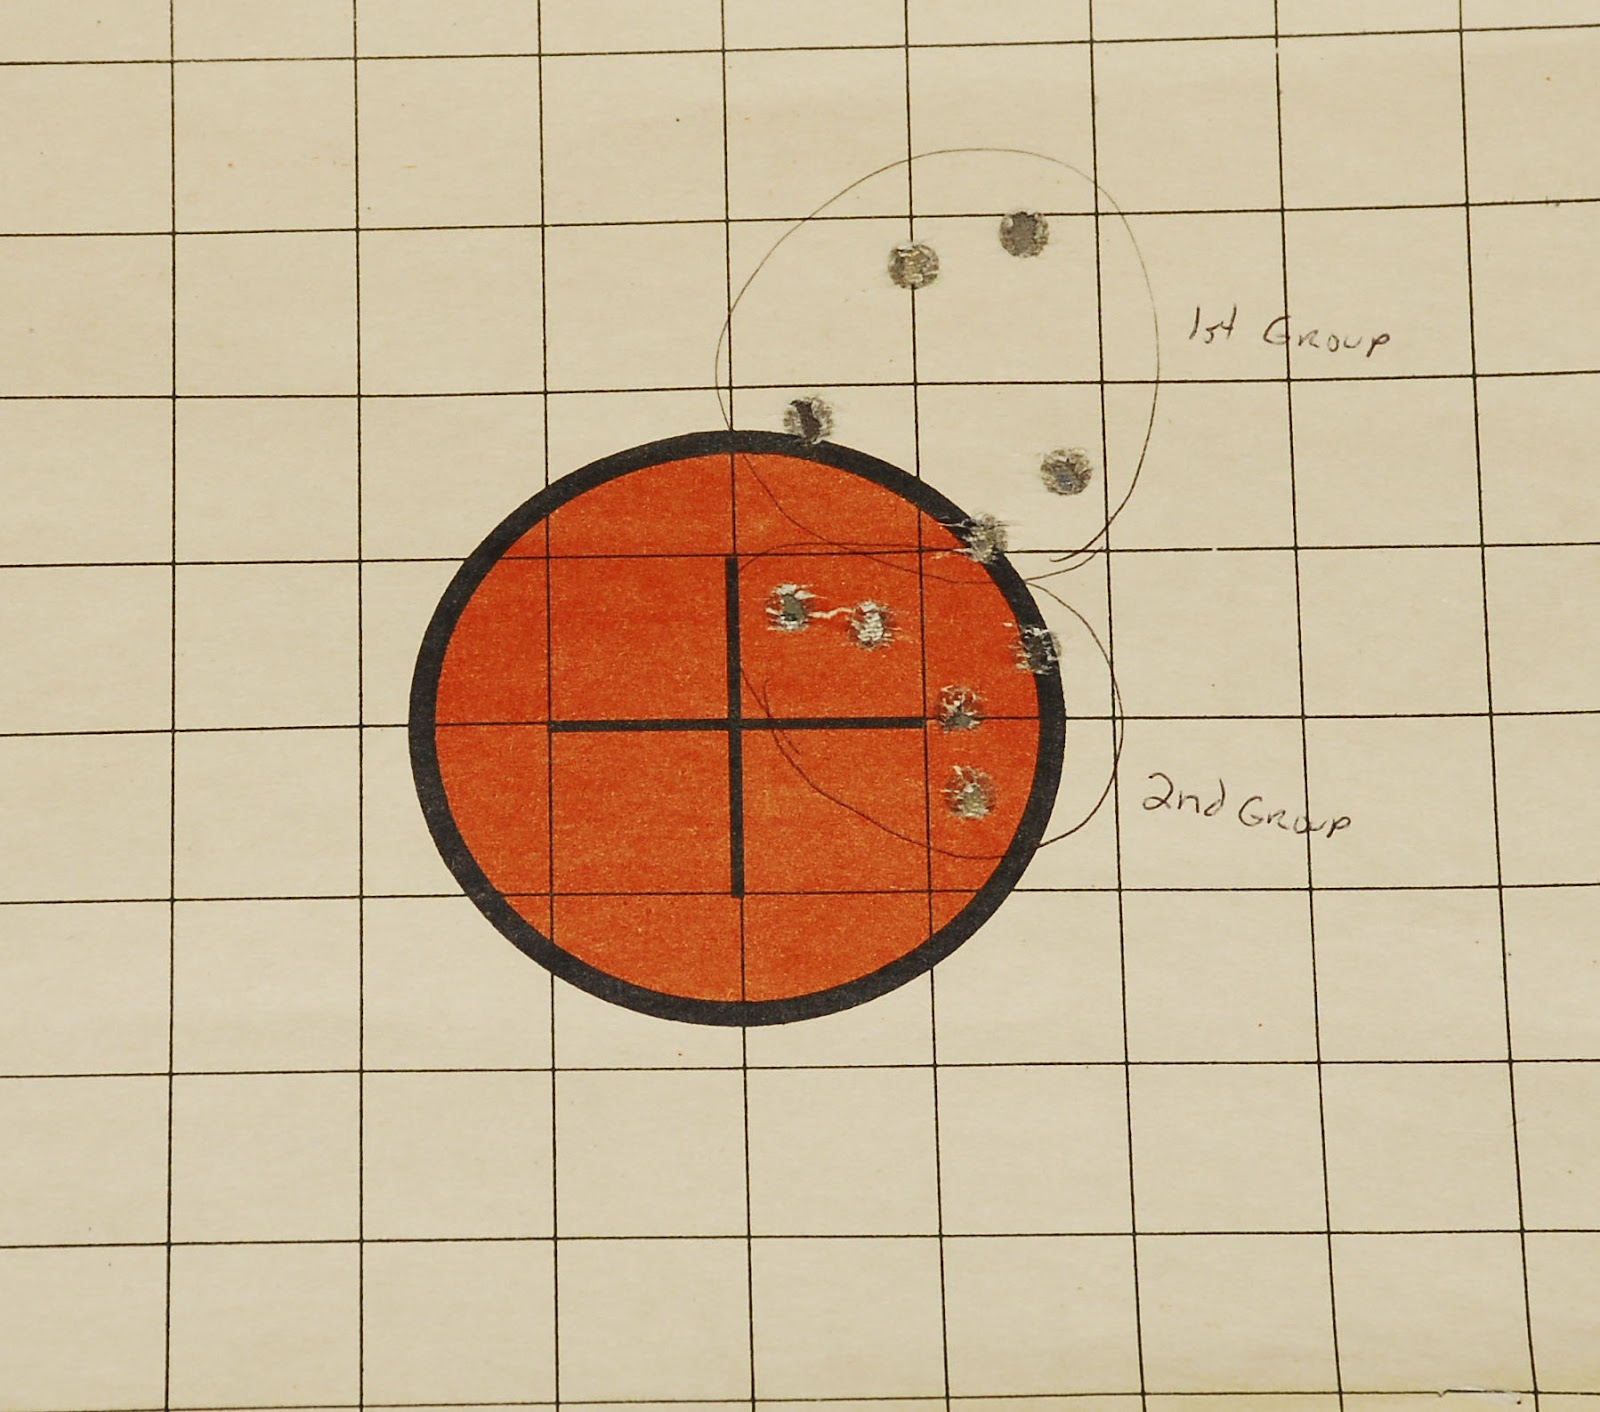 Applying some Kentucky windage I was able to make some hits out to 600yrd.  Then I rezeroed the scope, only to learn that I can't dial my point of aim  any ...